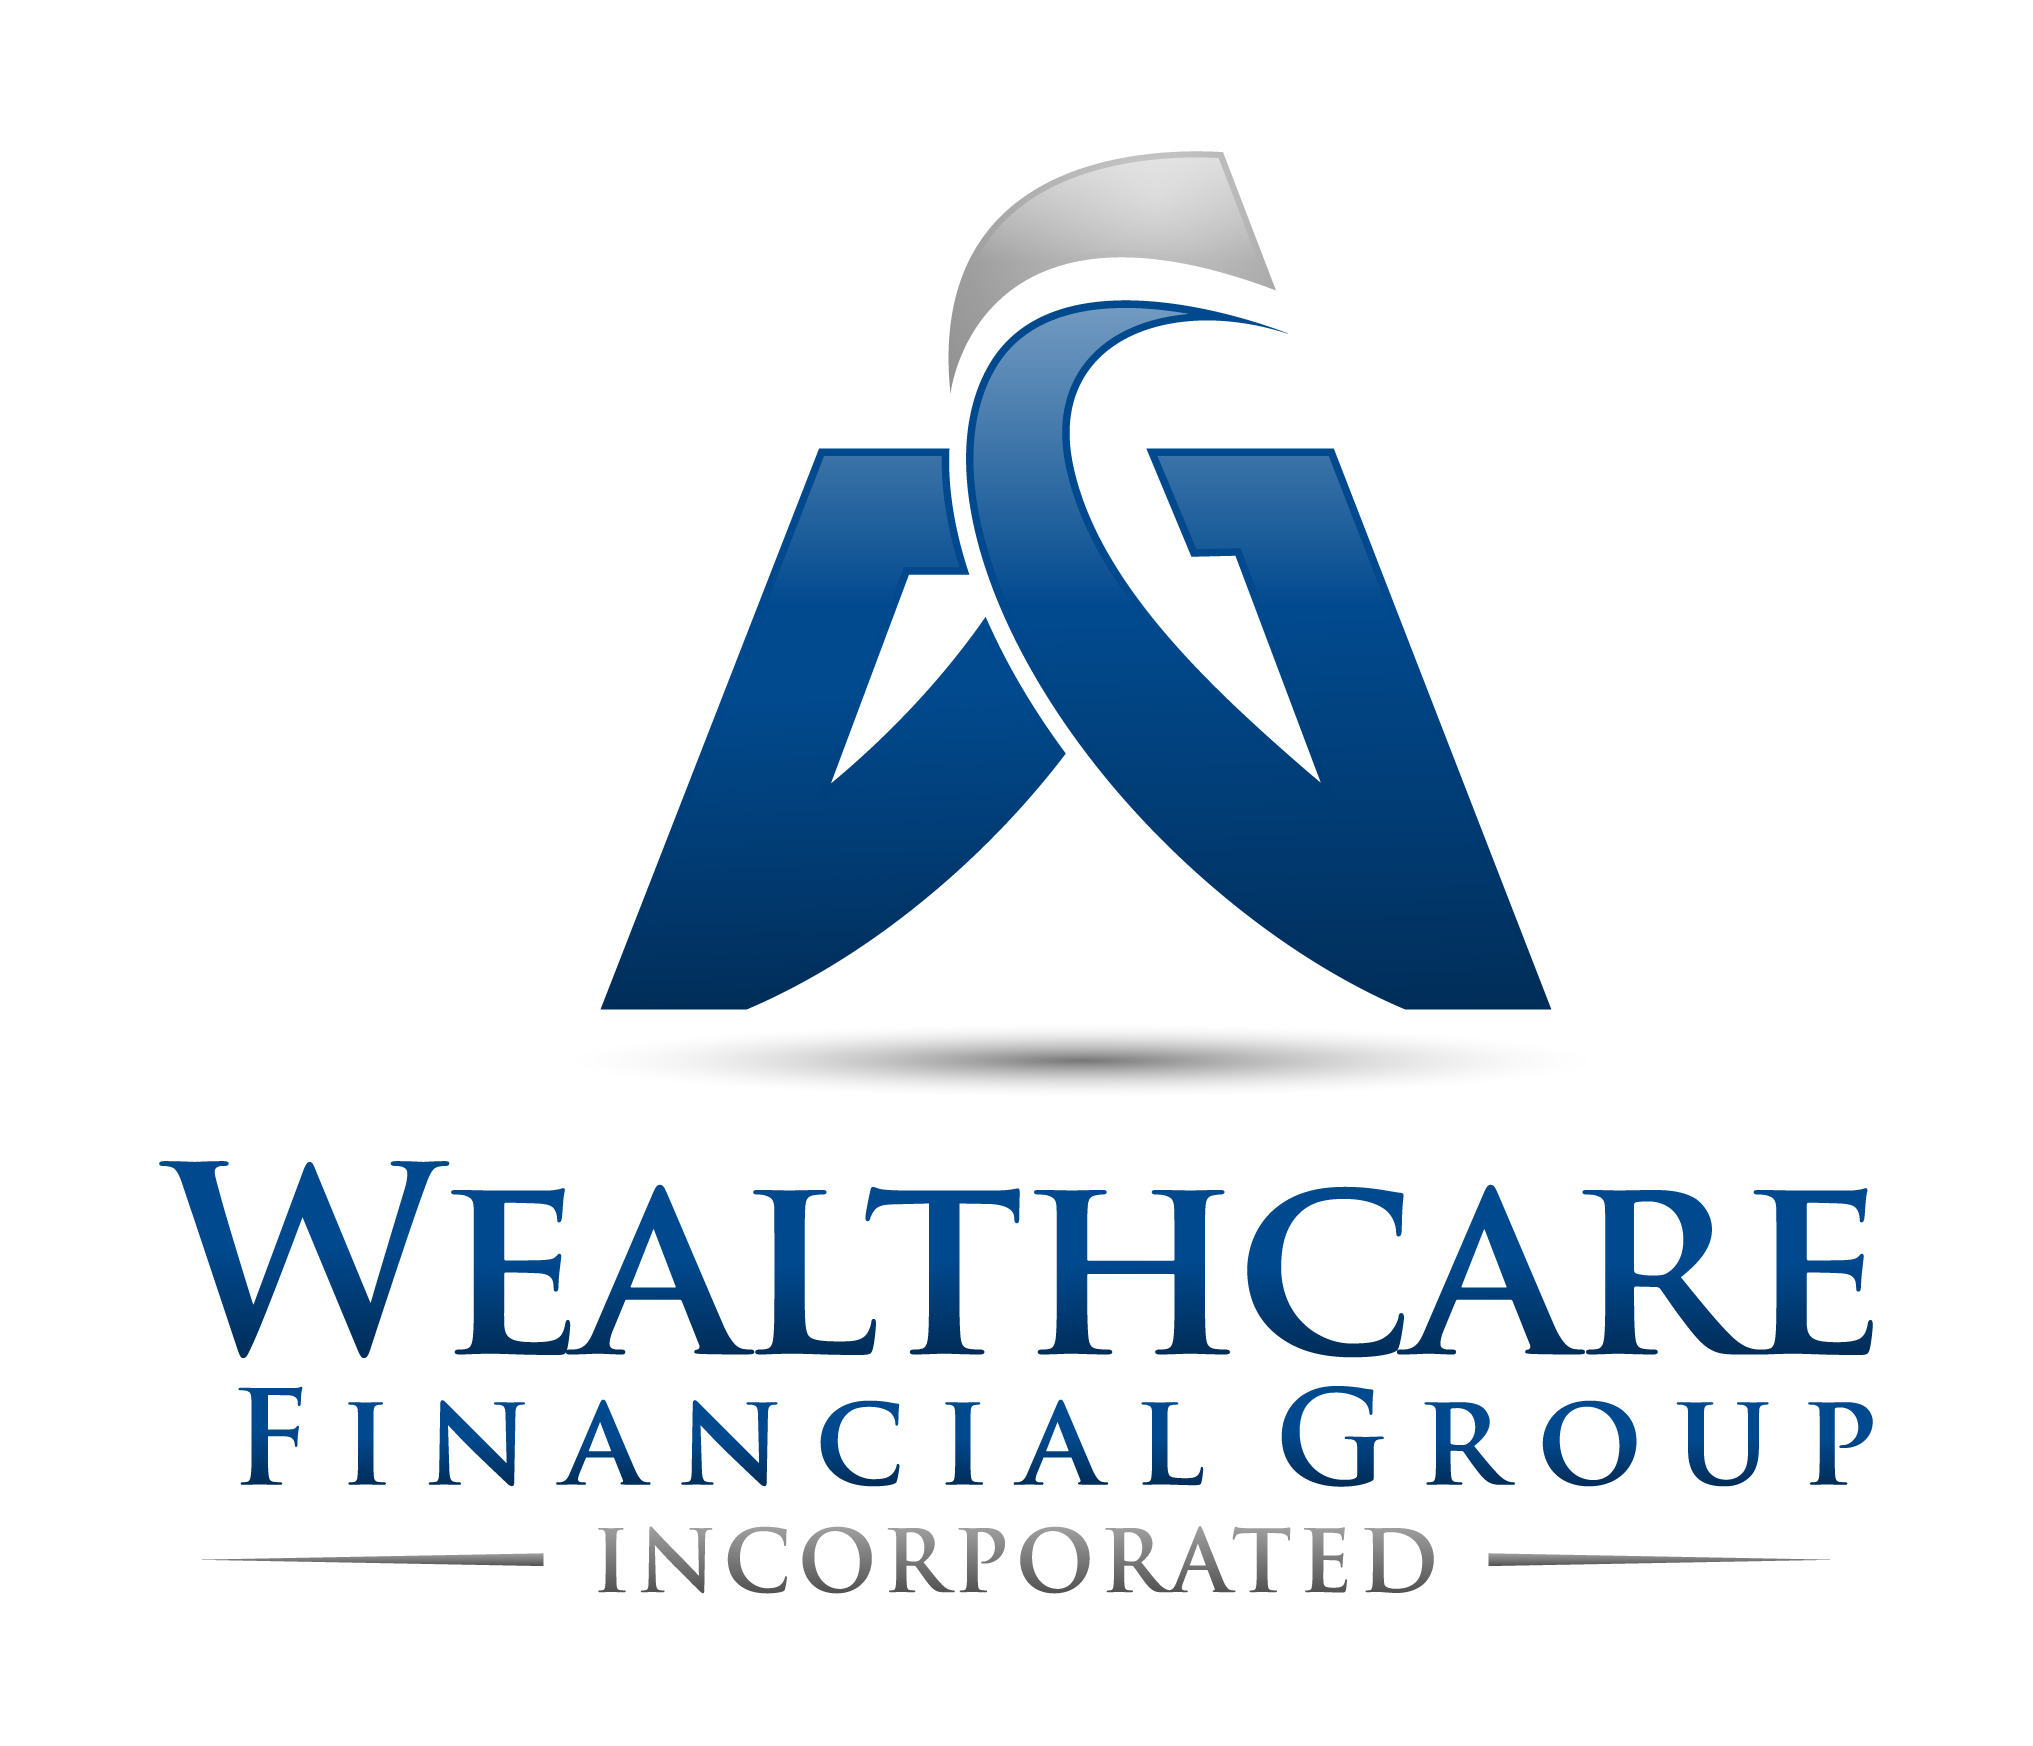 Heazlewood group investments inc ao 44 b1-2-b1 investments